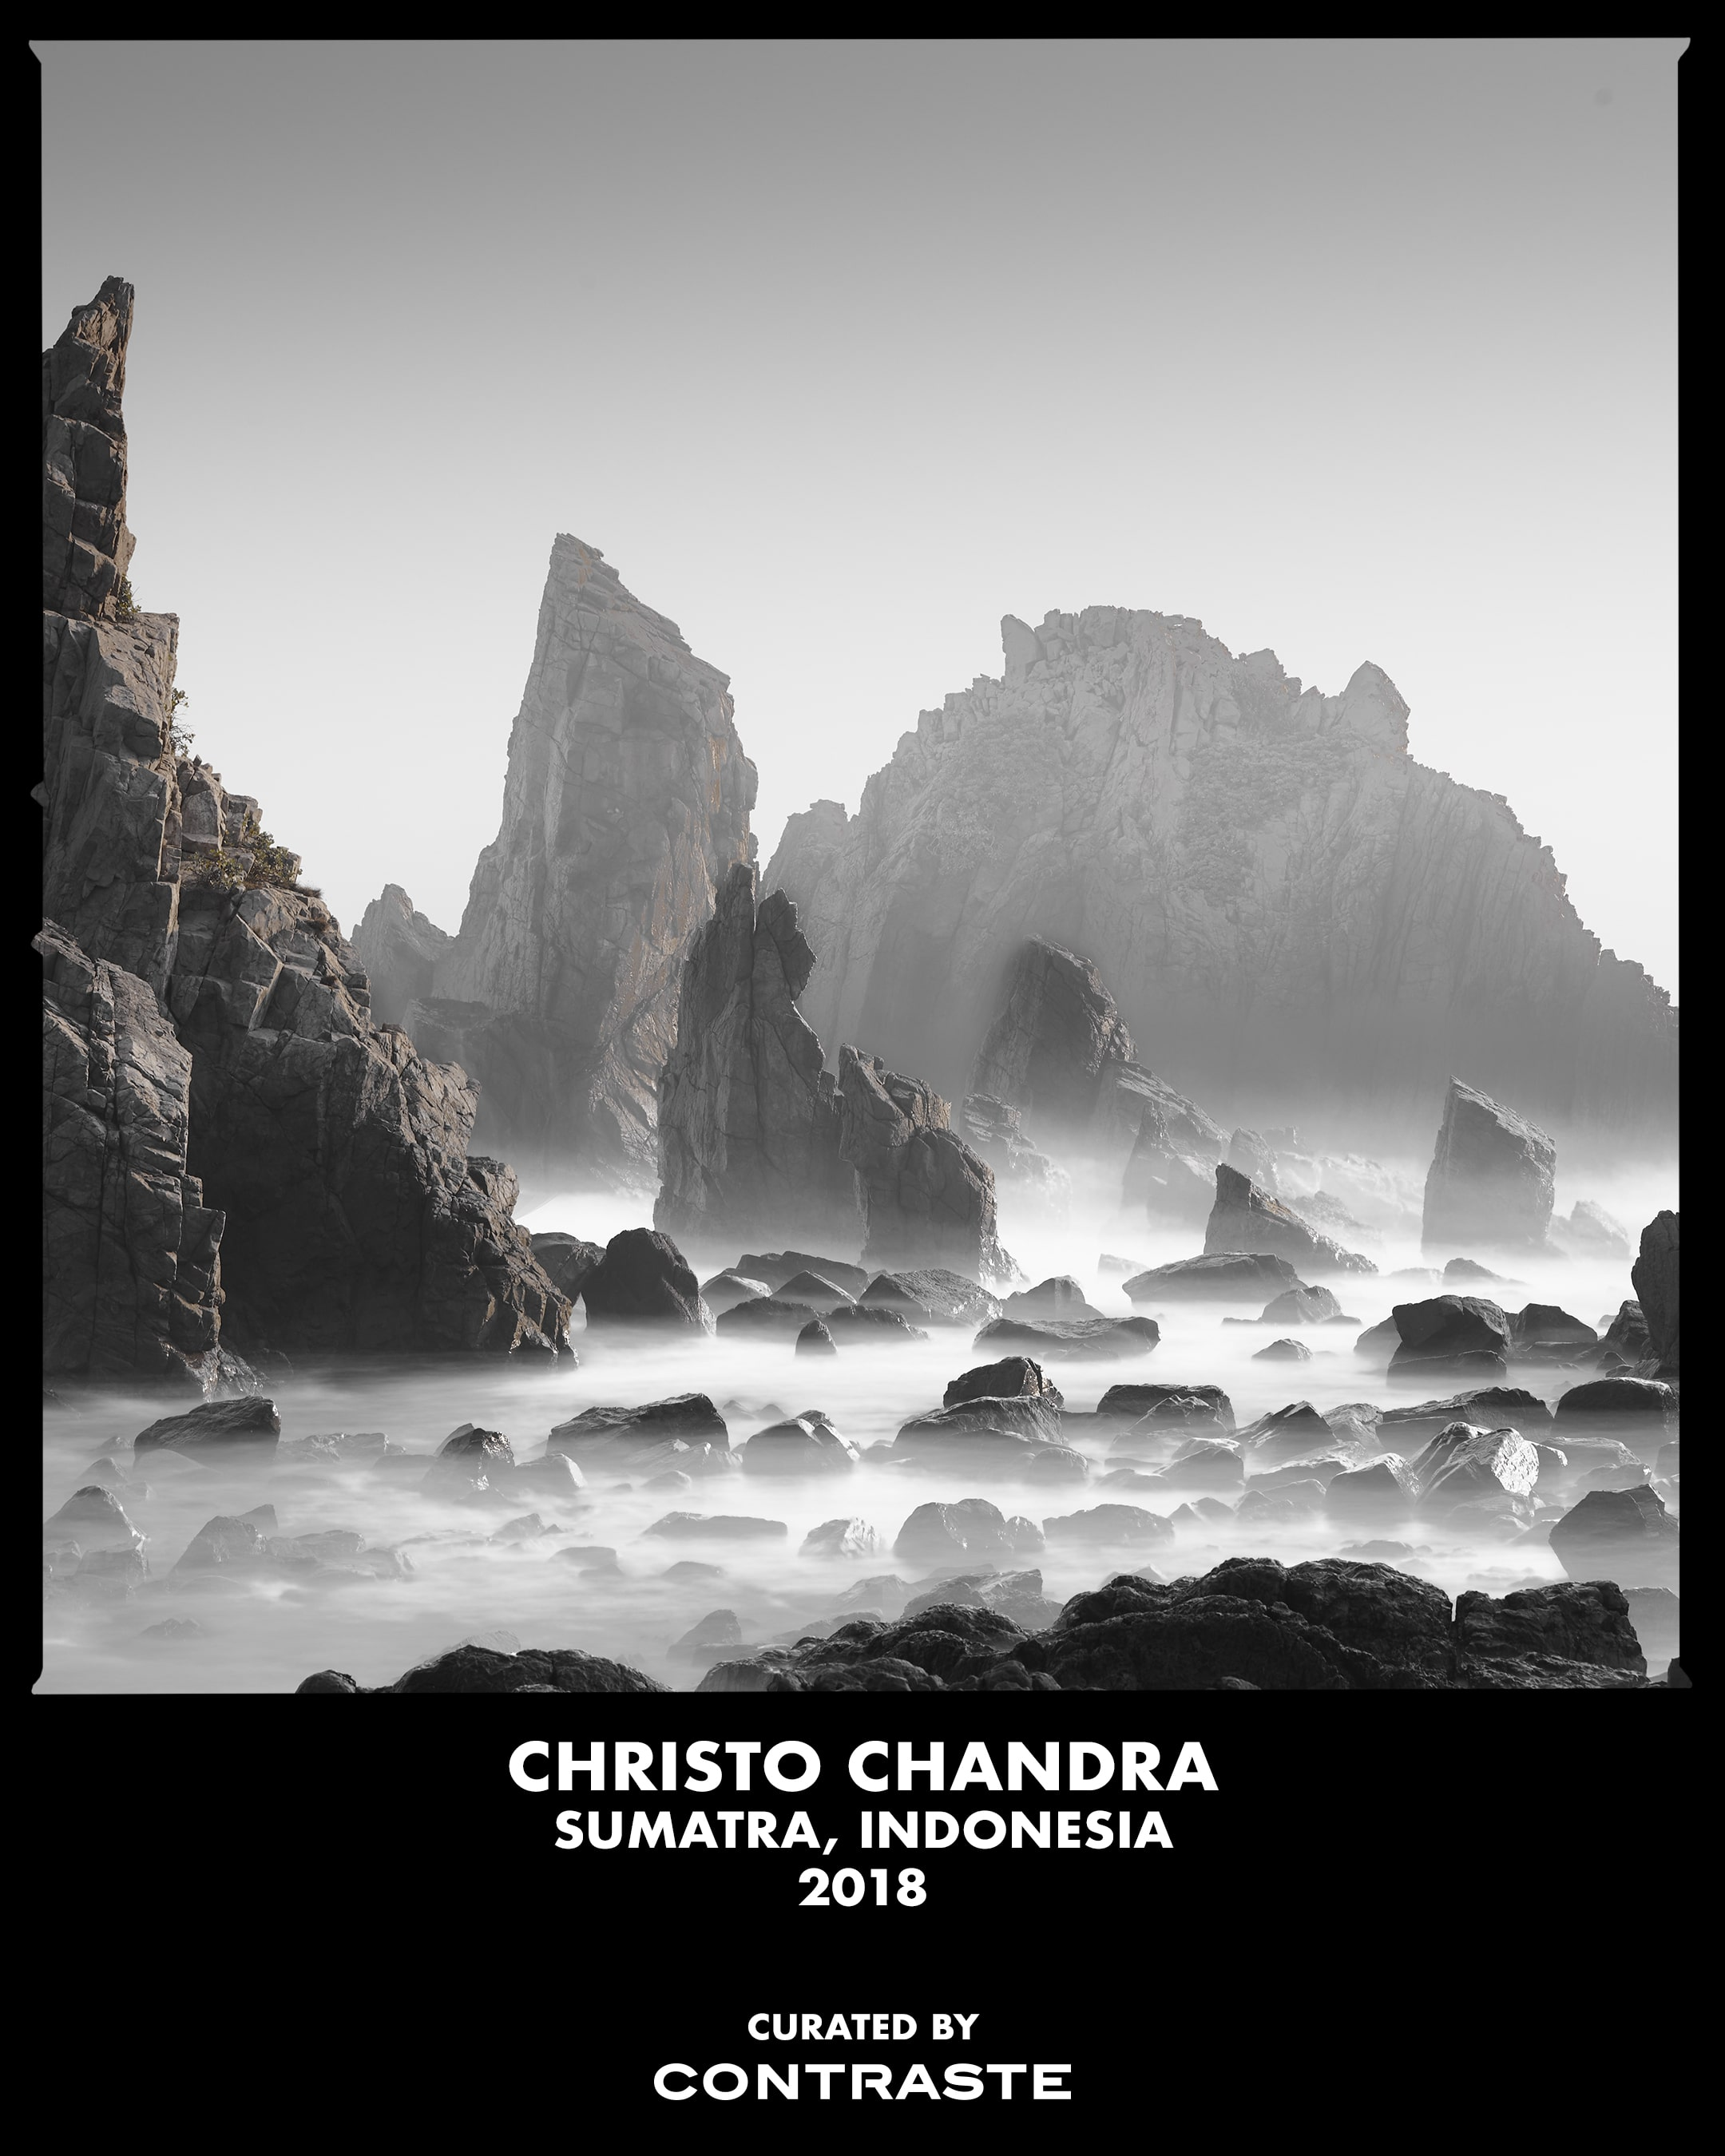 chandra Indonesia curation artists international talent contemporary photography gallery inspiration exhibition contrast paris